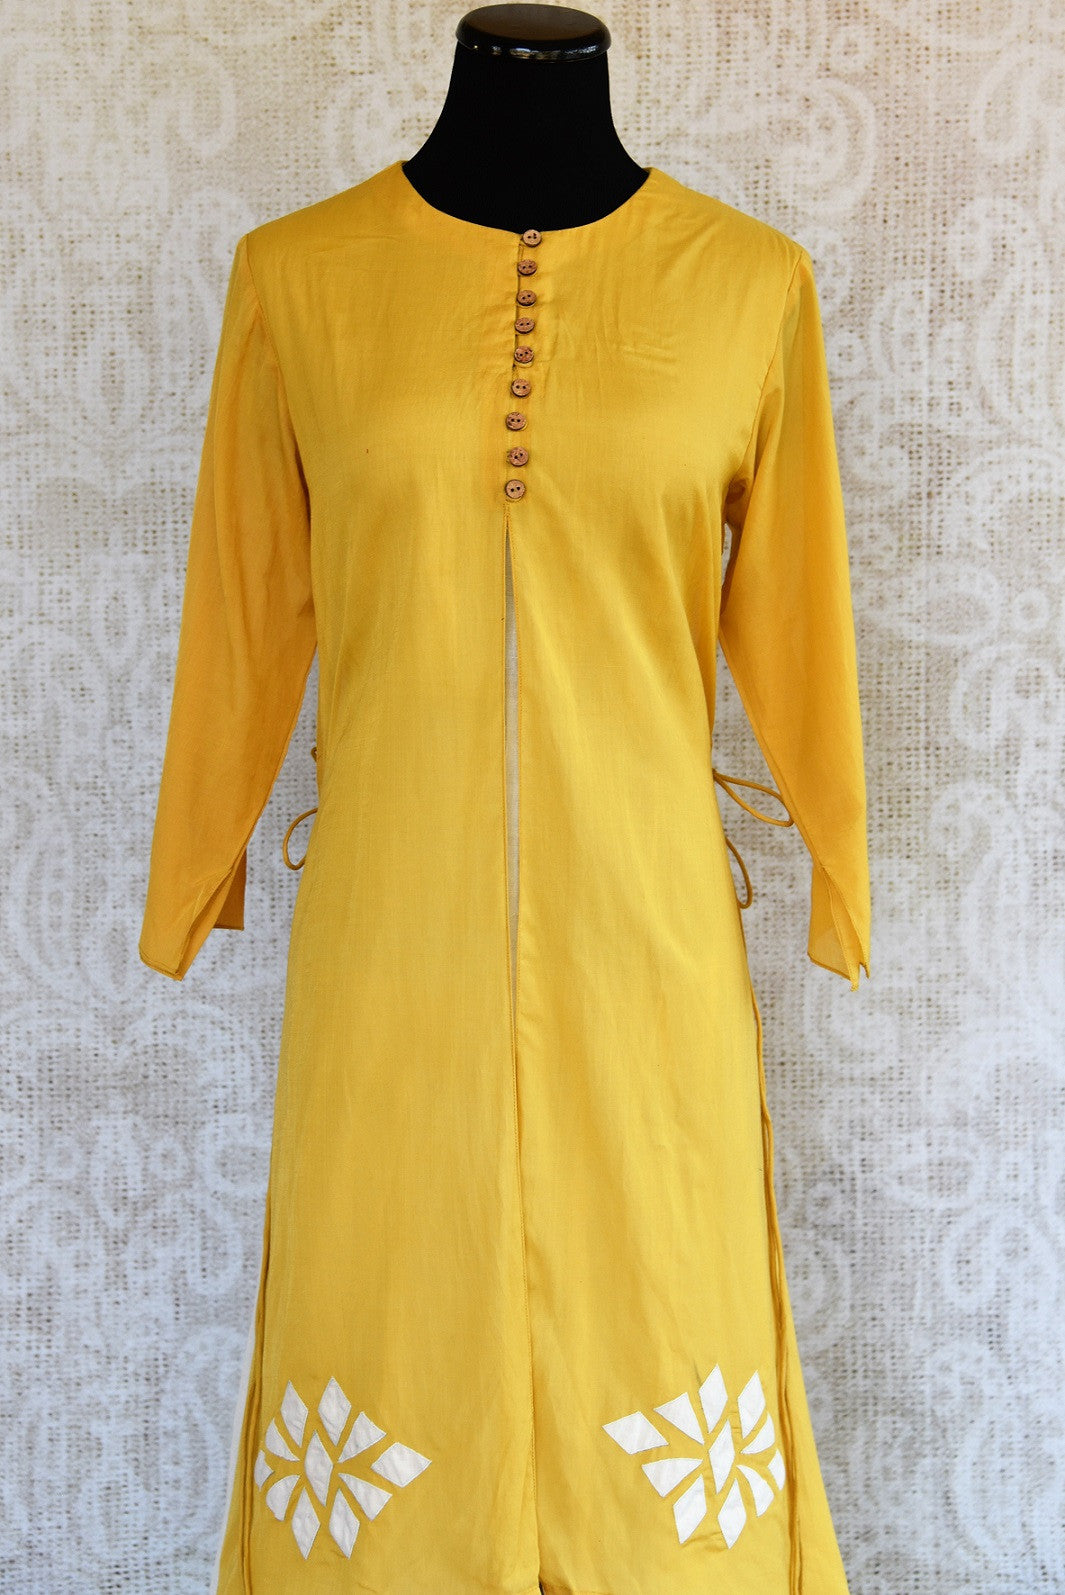 Buy this mustard Indo western yellow and white Indian ethnic dress online from our Pure Elegance store in USA. It is perfect for any wedding or reception party. Close up.